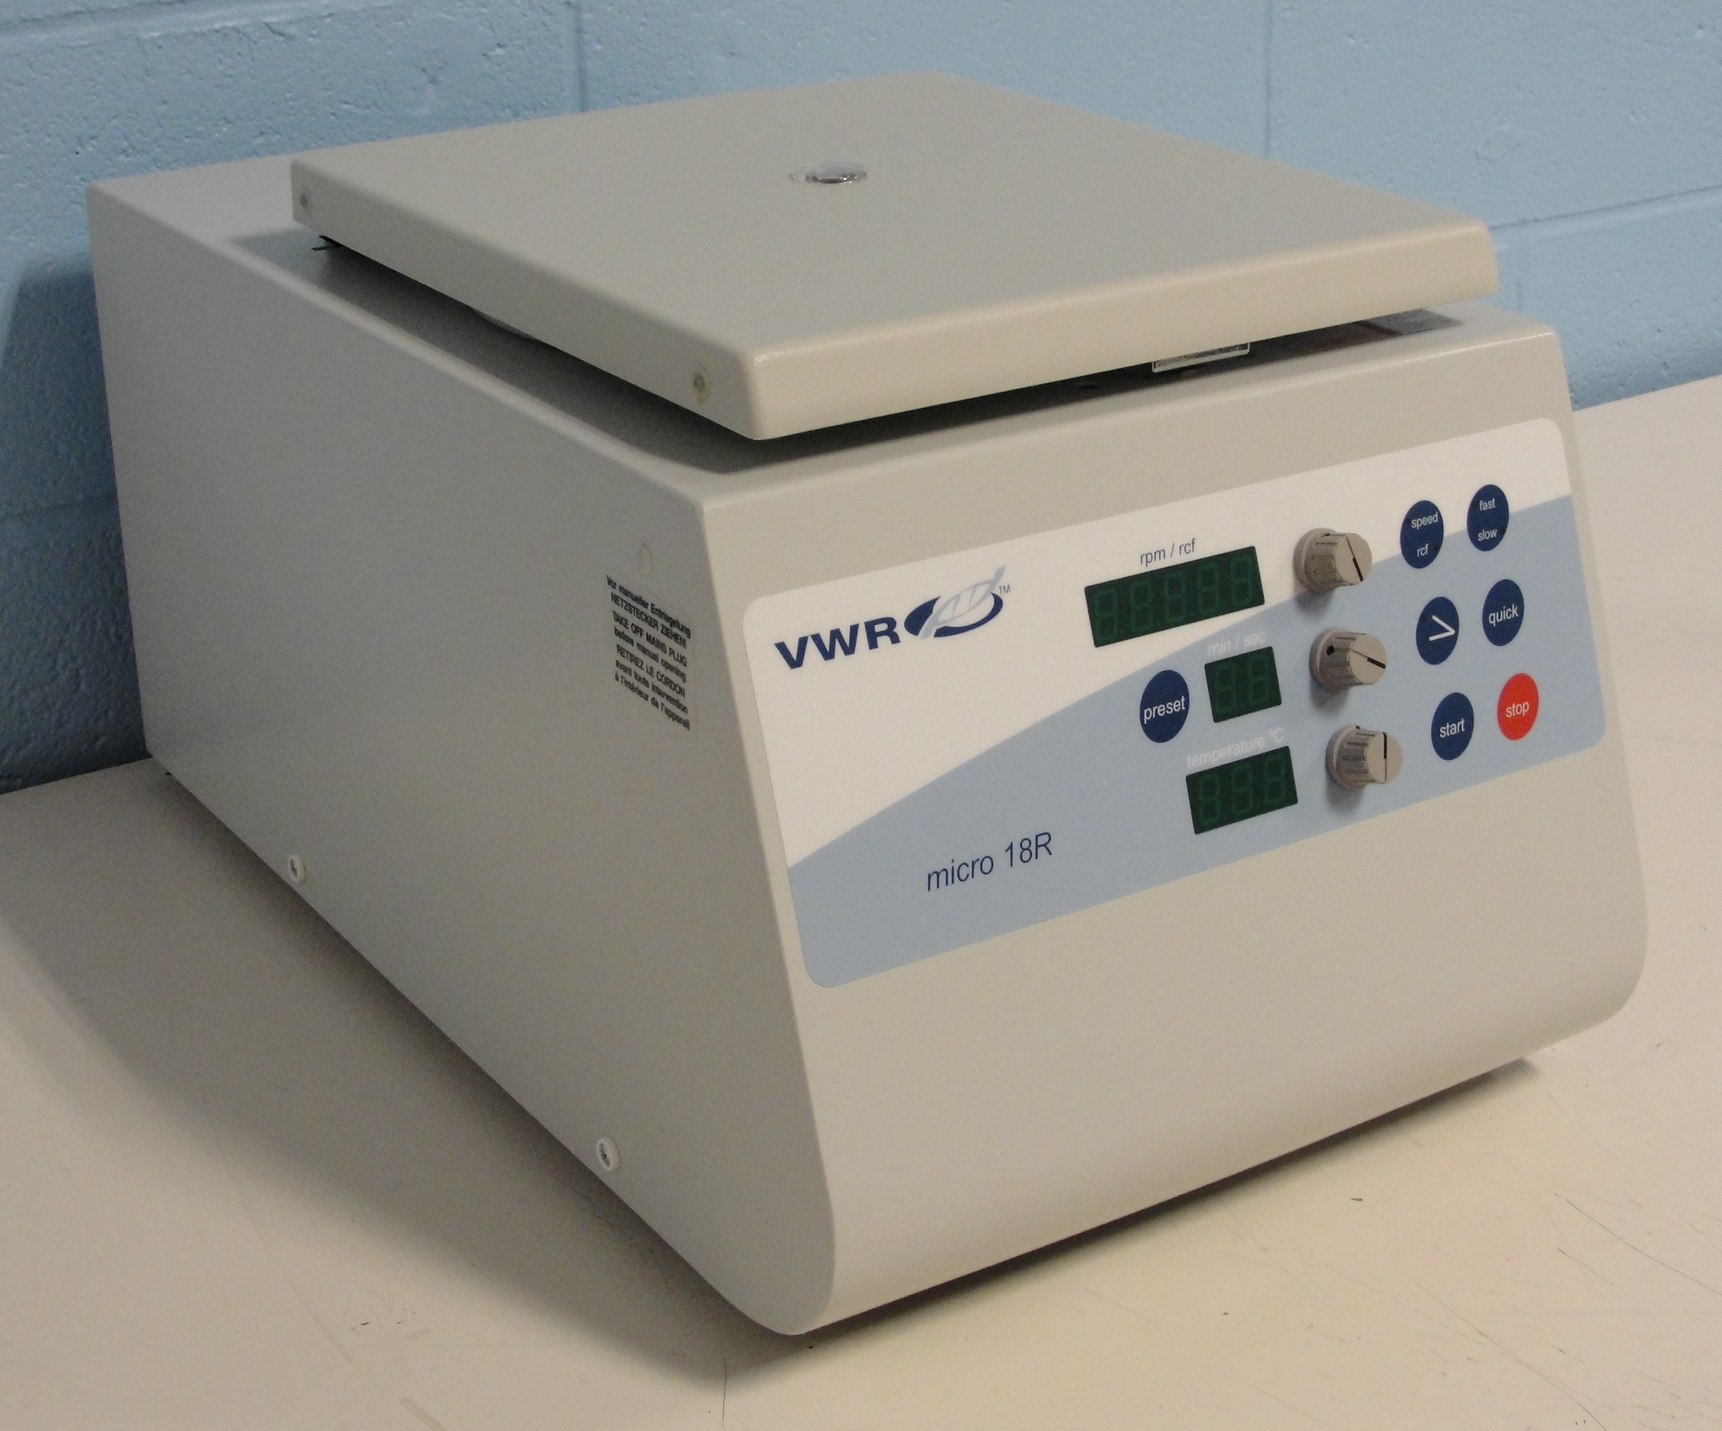 VWR 18R Refrigerated Microcentrifuge with Rotor